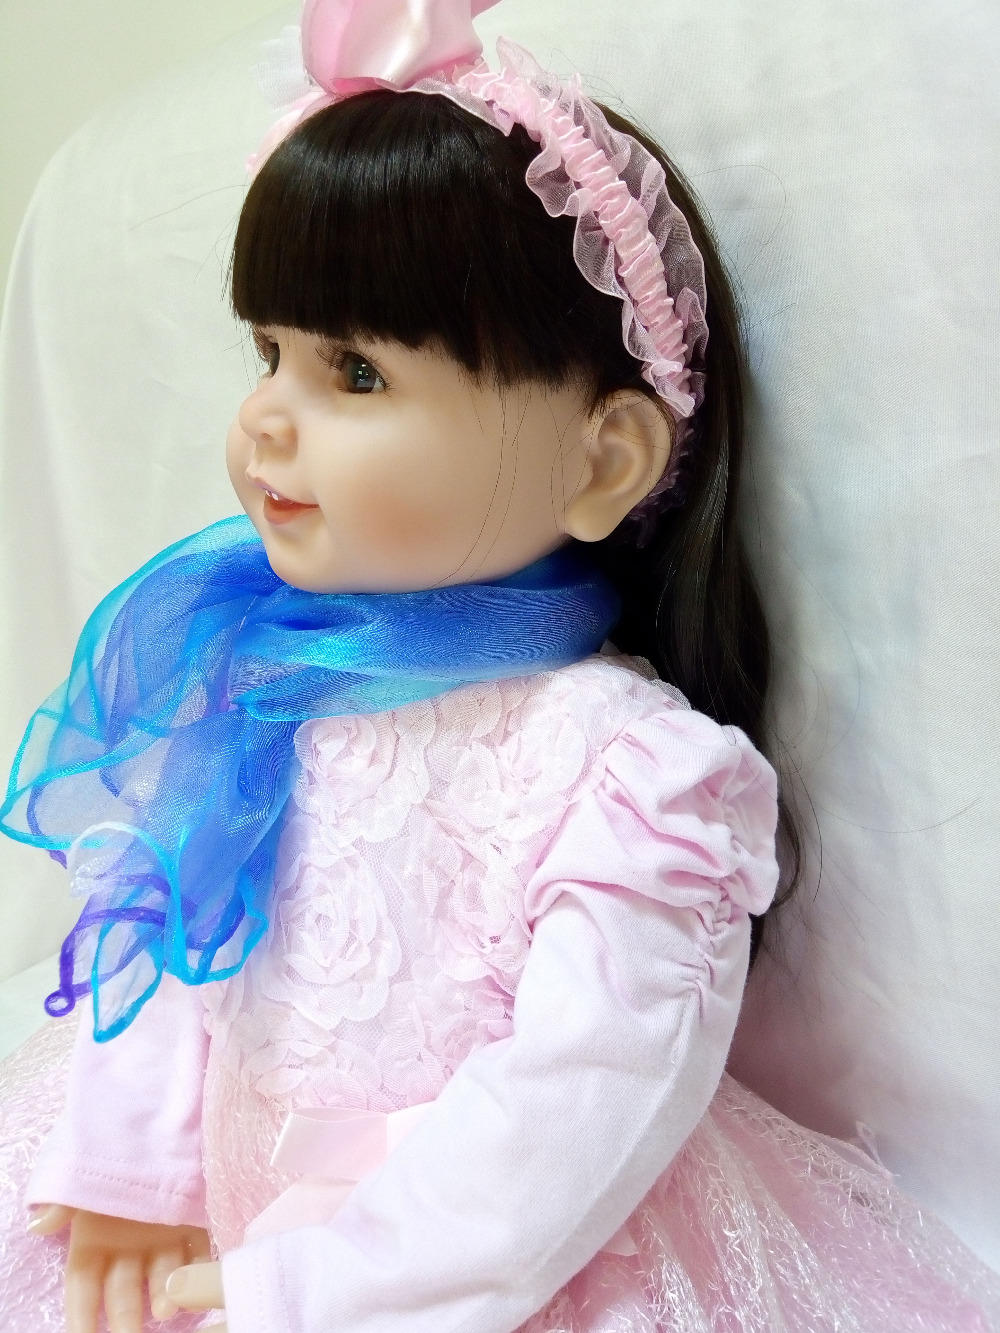 vinyl silicone doll soft baby reborn lifelike dolls 61CM kawaii Girls Playmates brinquedo birthday Childrens Day hot-sellingvinyl silicone doll soft baby reborn lifelike dolls 61CM kawaii Girls Playmates brinquedo birthday Childrens Day hot-selling